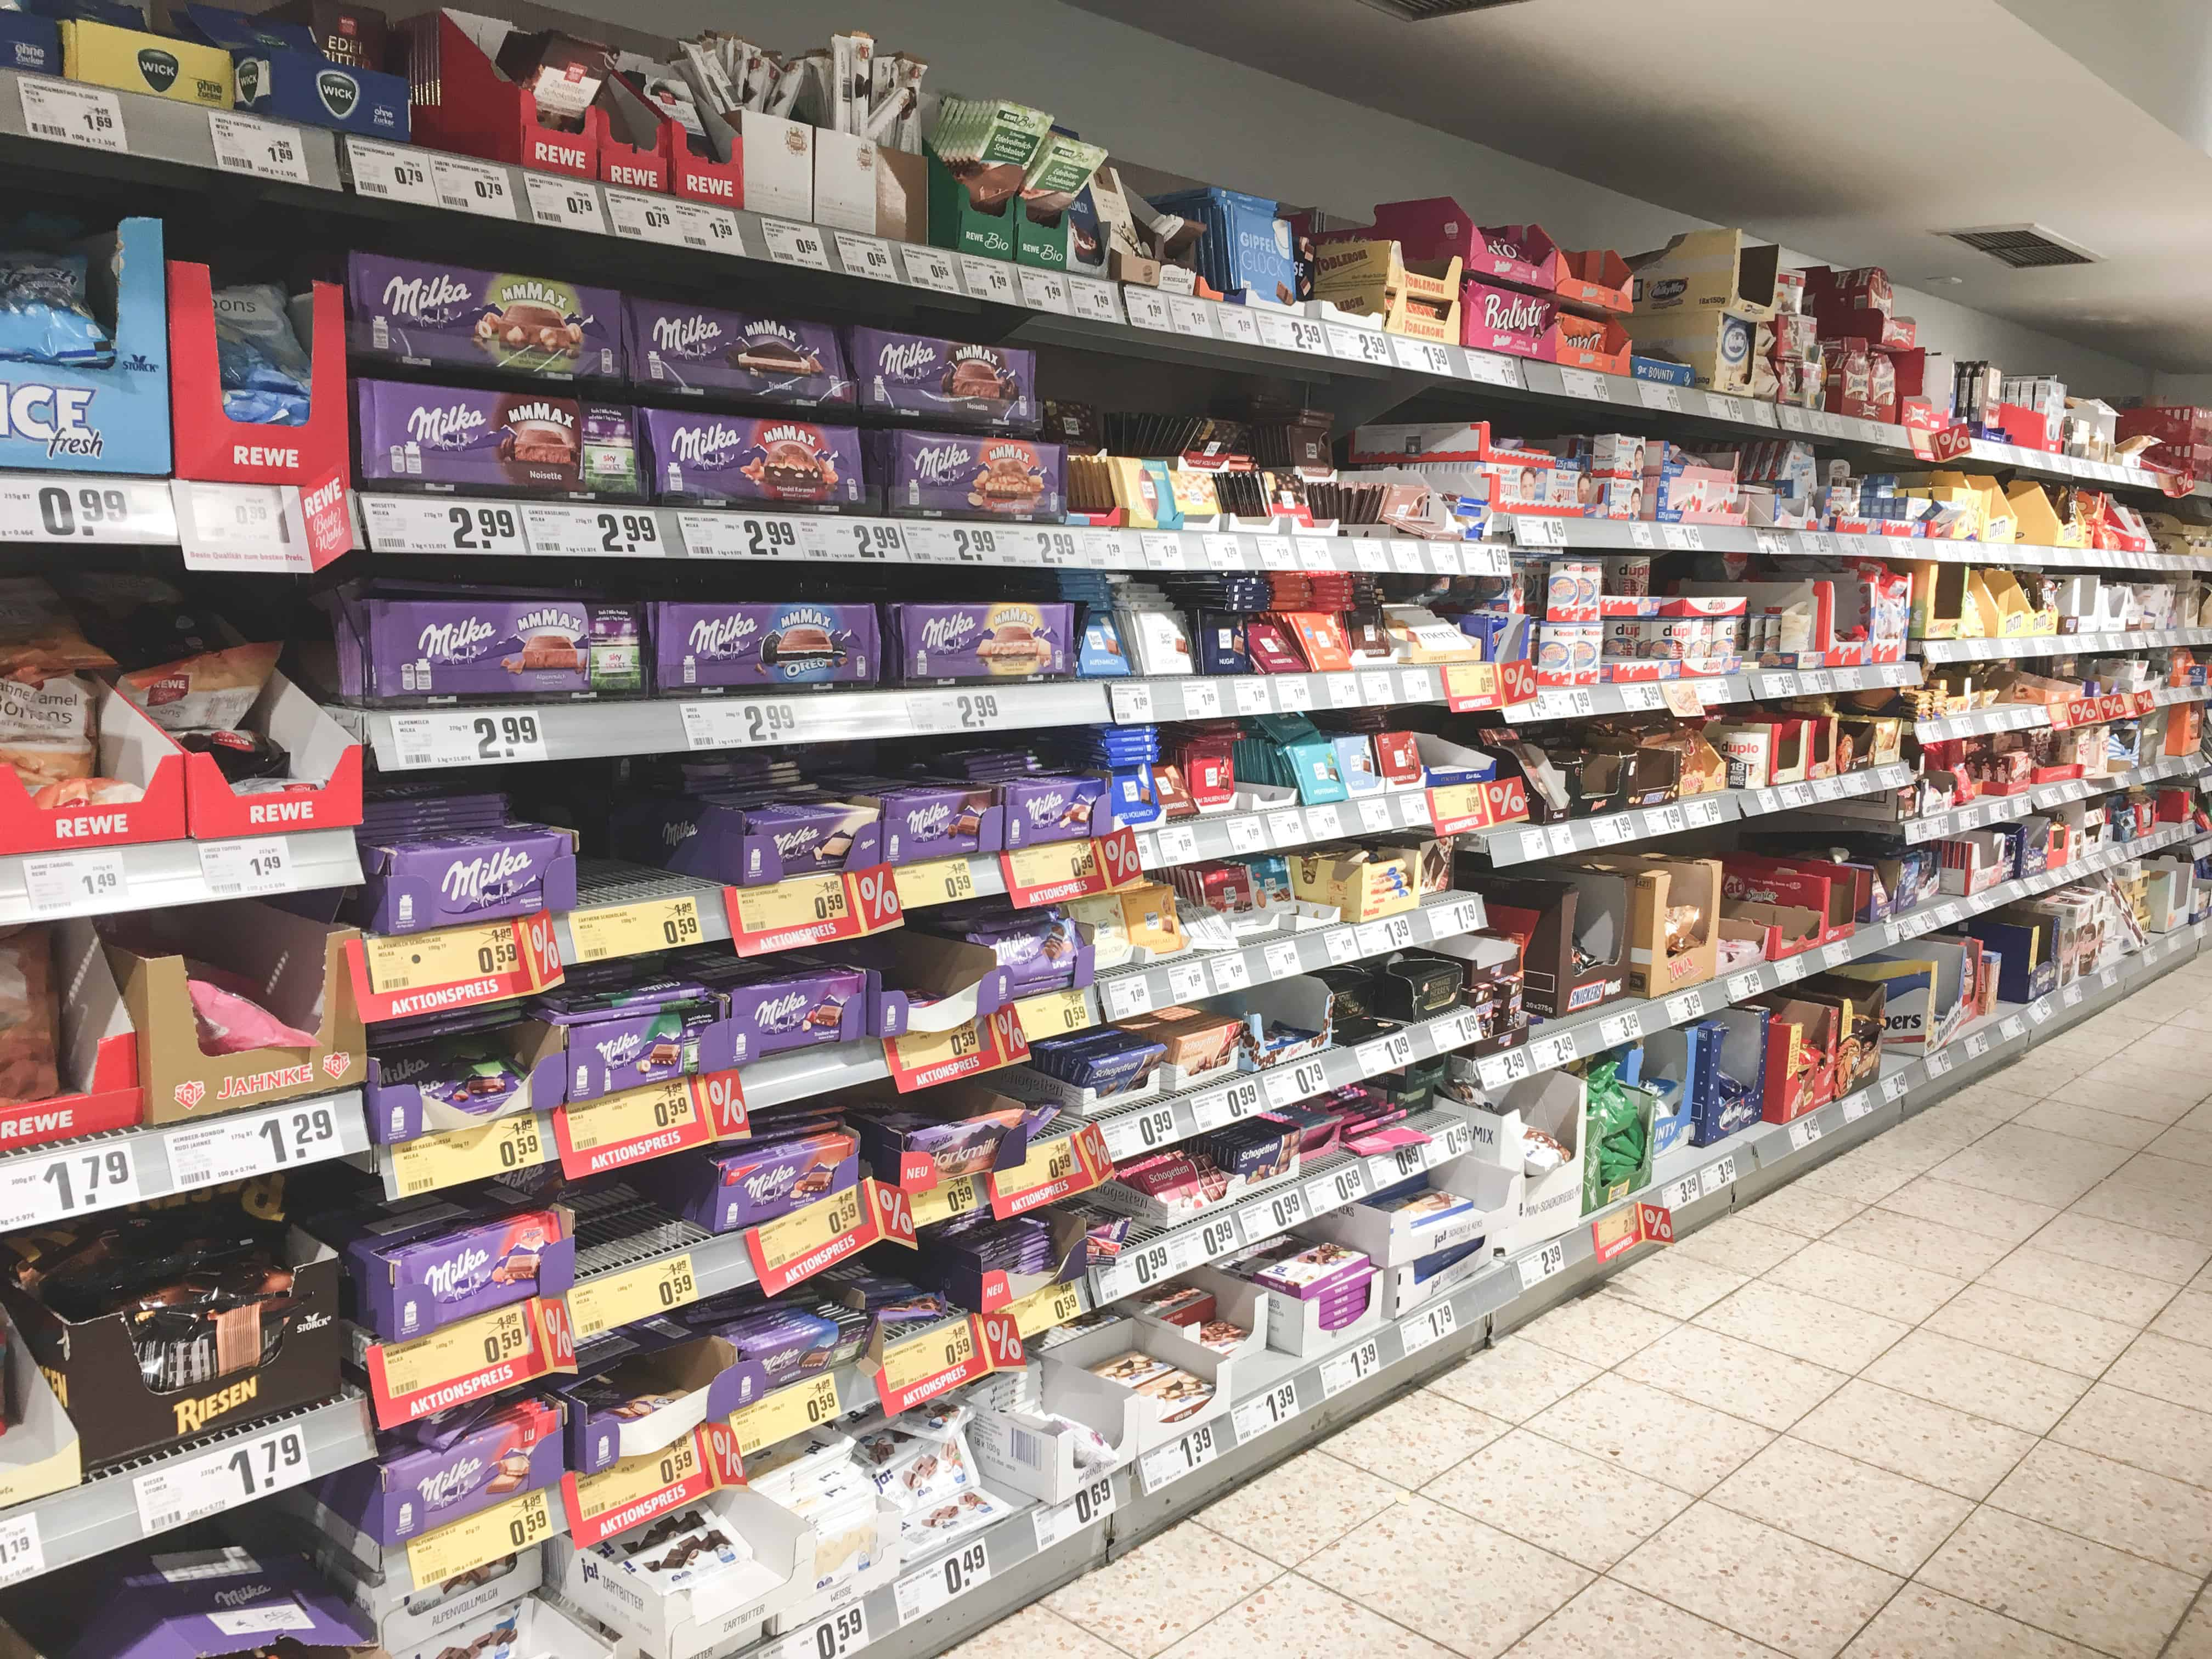 The large variety of chocolate in German supermarkets is one thing that surprised me about Germany!